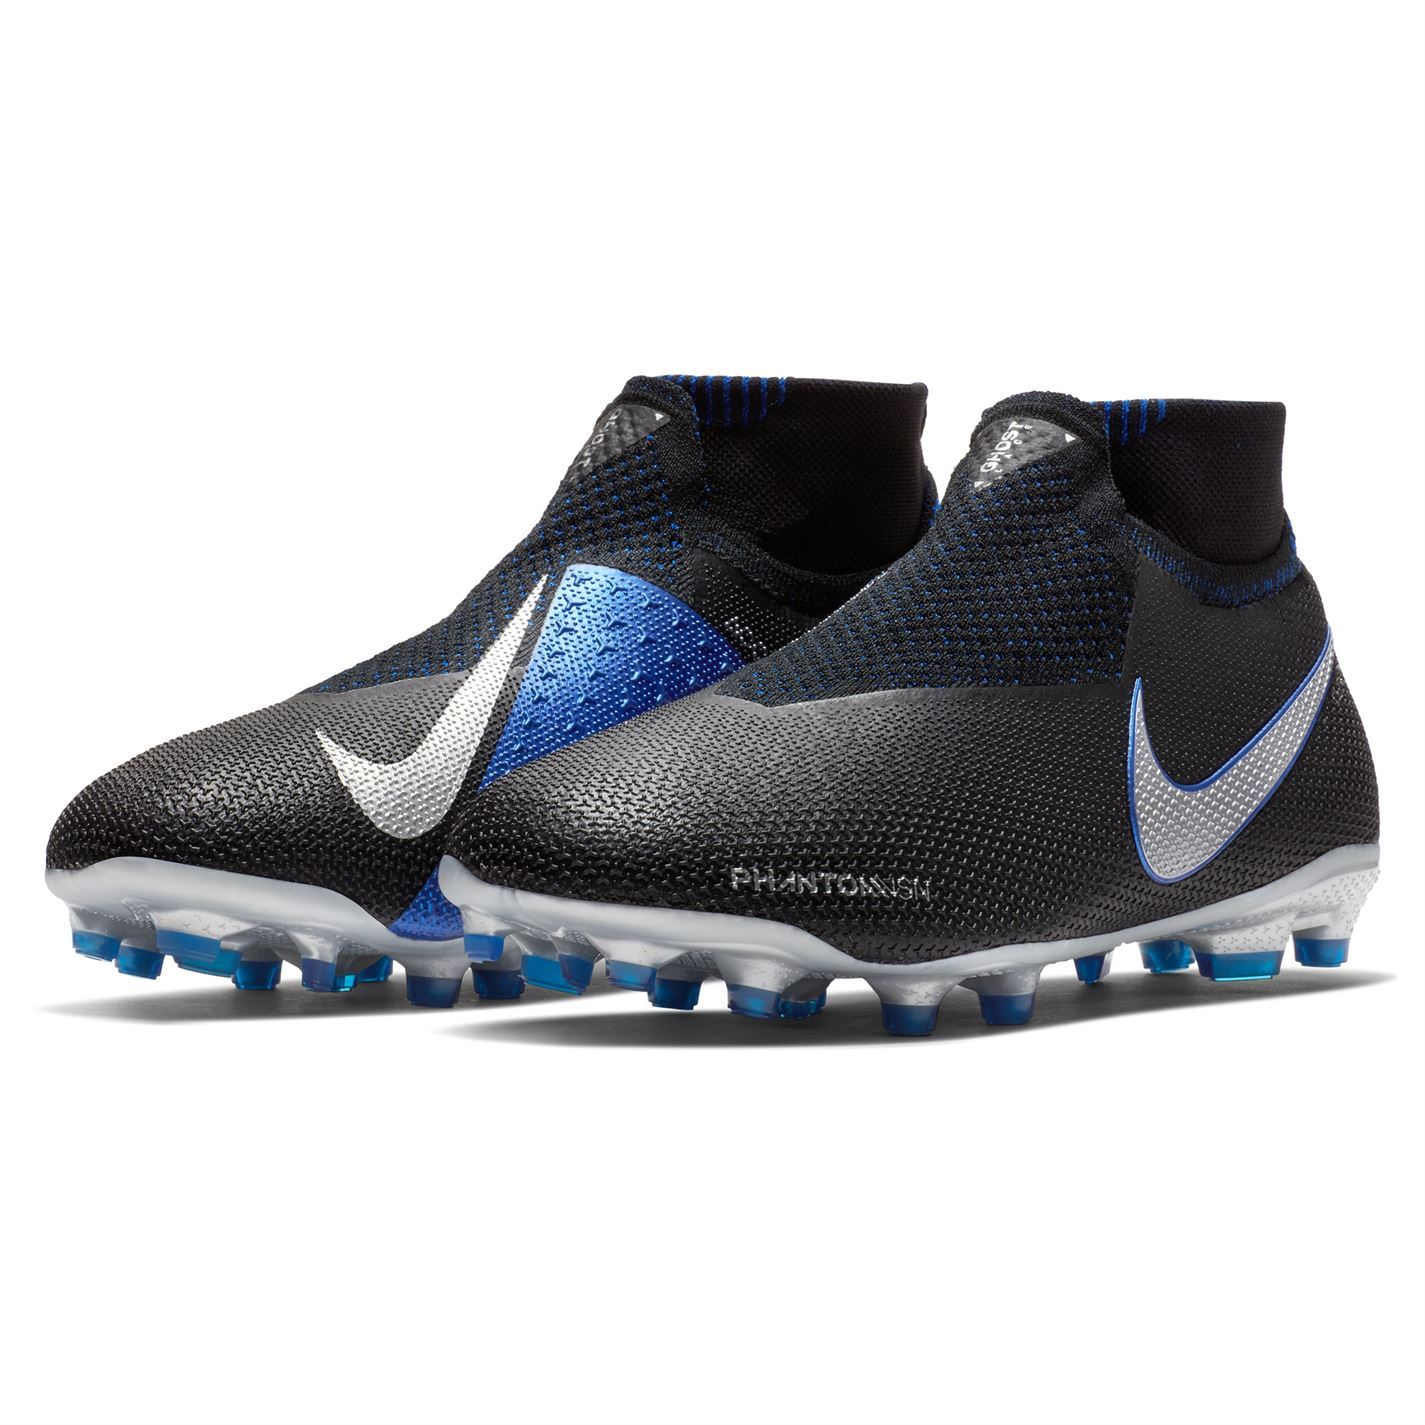 quality design 5f4f4 60182 ... Nike Phantom Vision Elite DF DF DF FG Firm Ground Scarpe Da Calcio  Junior Calcio Cunei ...